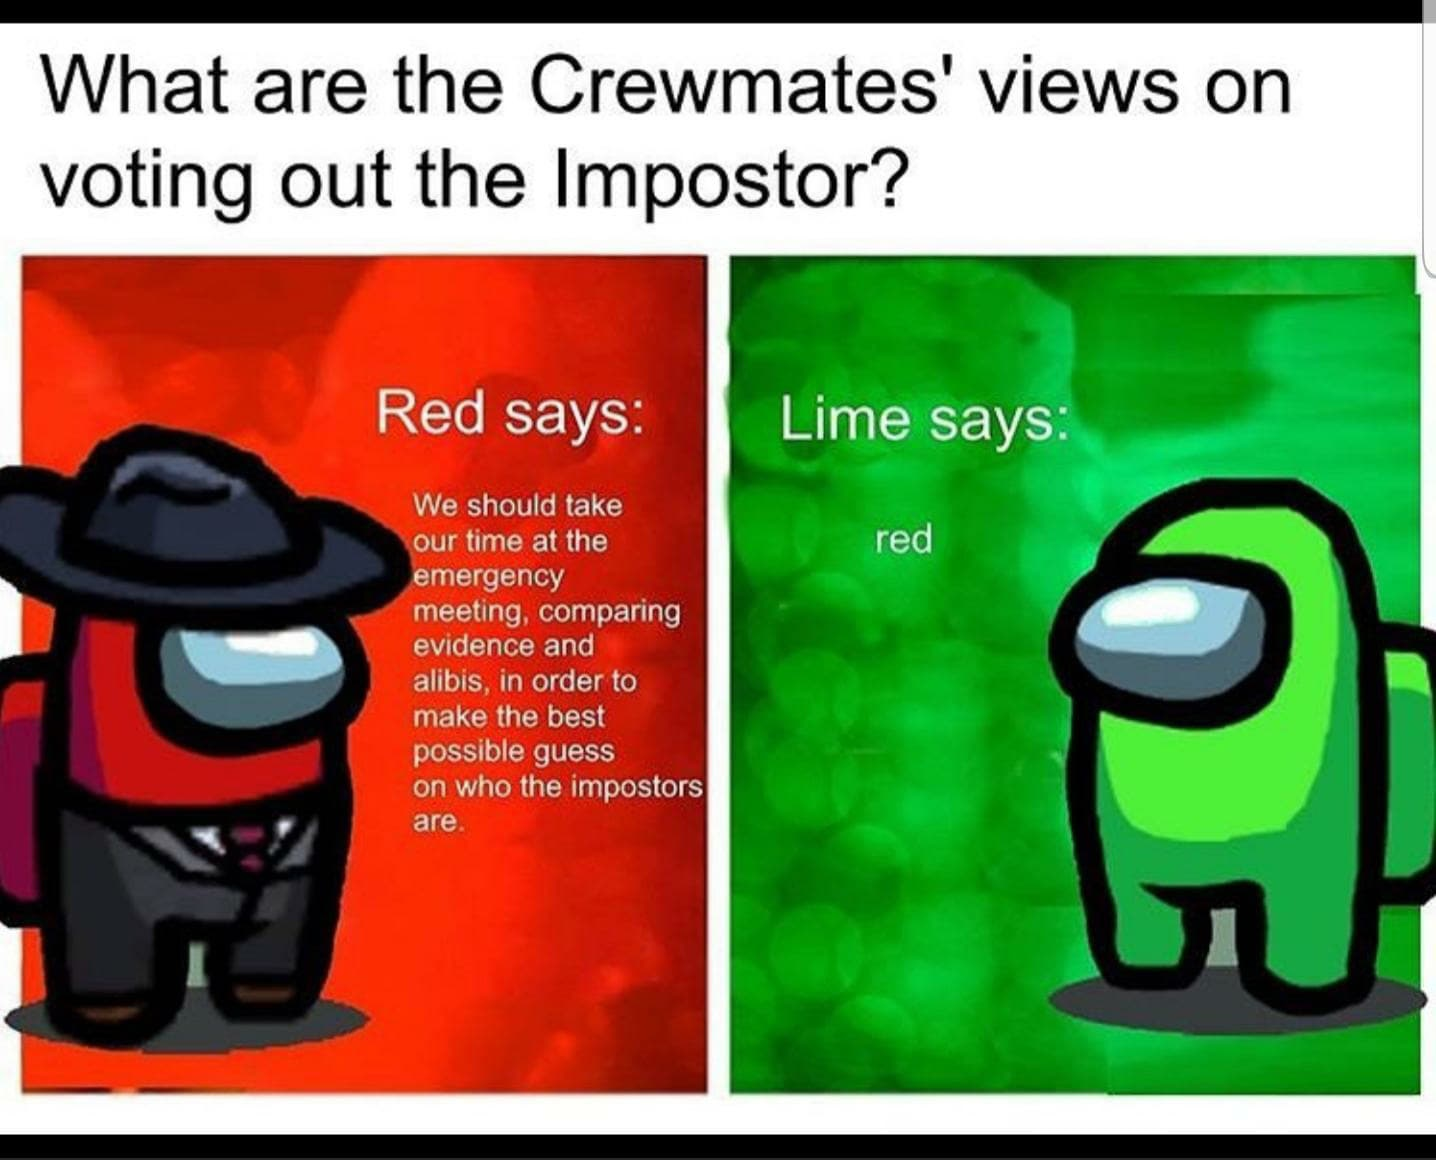 among-us-meme-005-crewmates-views-on-imposter-lime-says ...